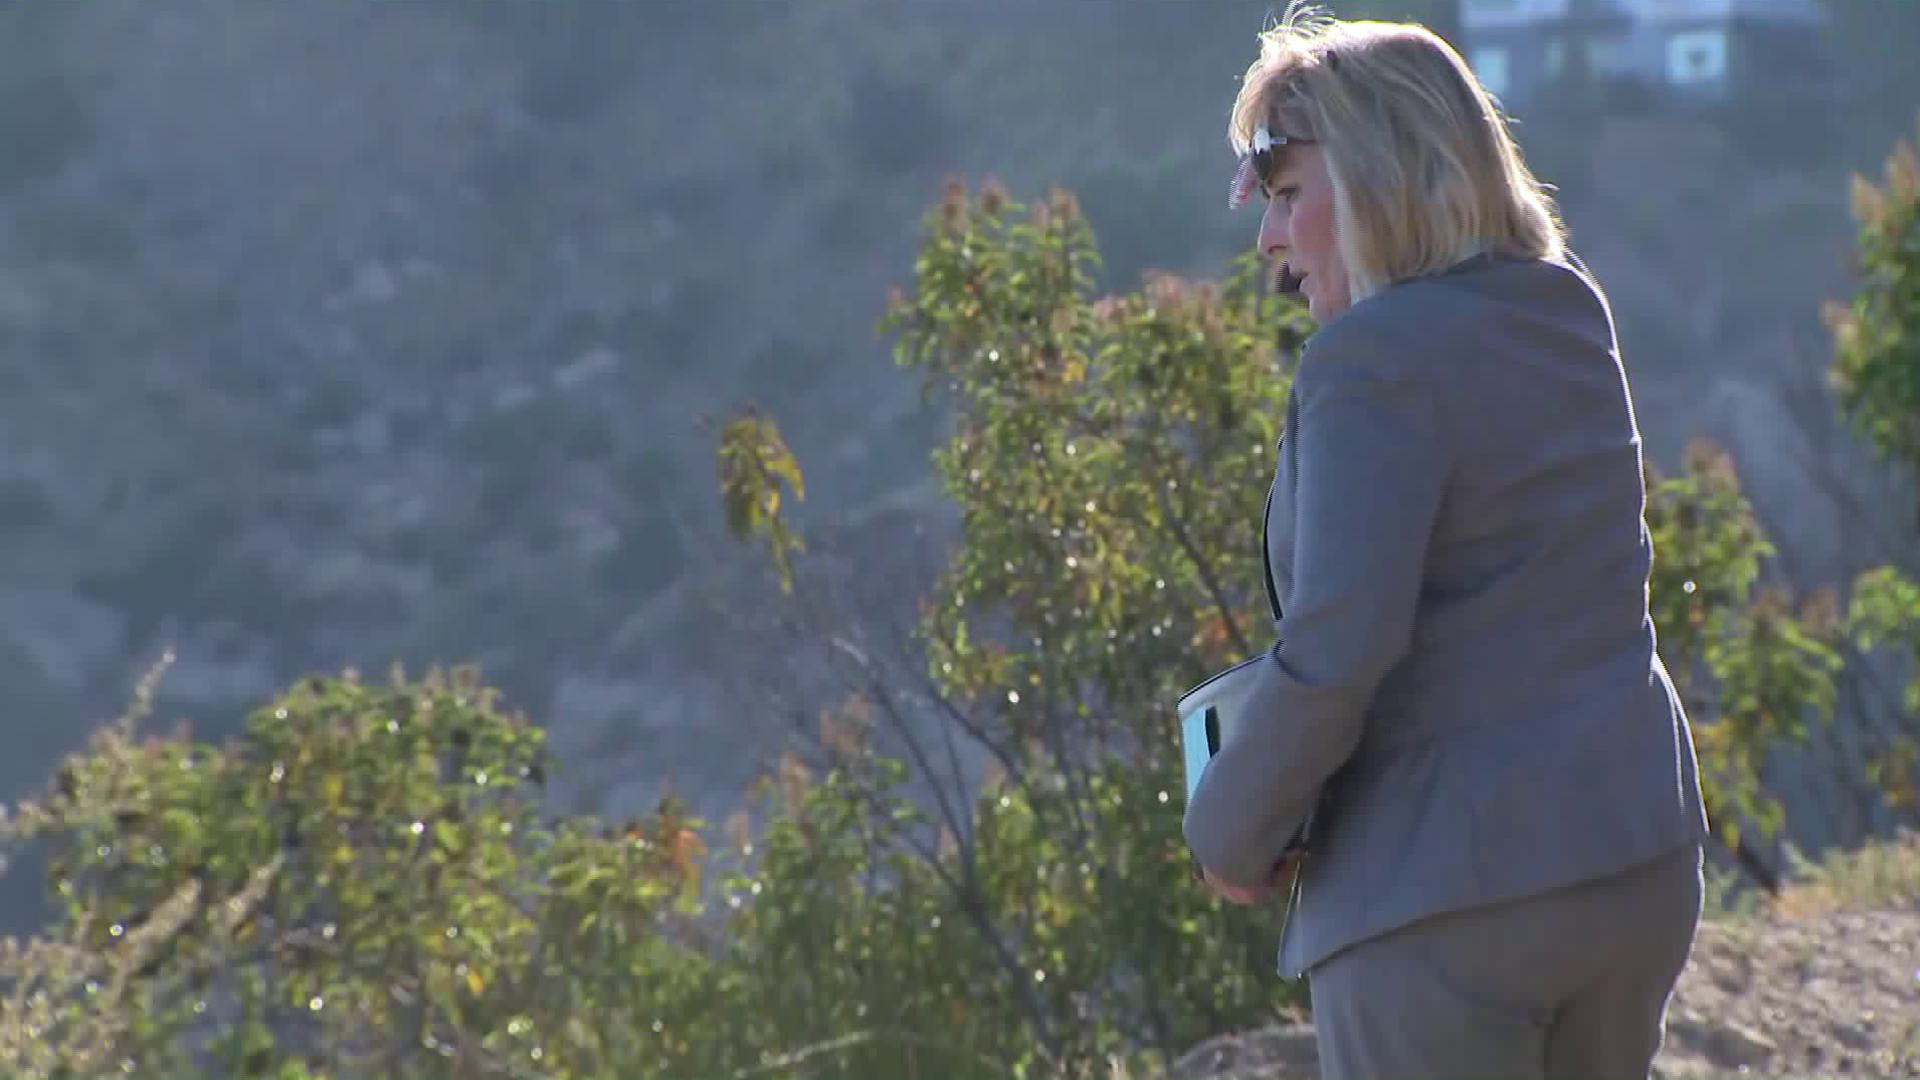 An investigator responds to the scene where a body was found off the side of a ride in the Santa Monica Mountains, above Malibu, on July 27, 2018. (Credit: KTLA)